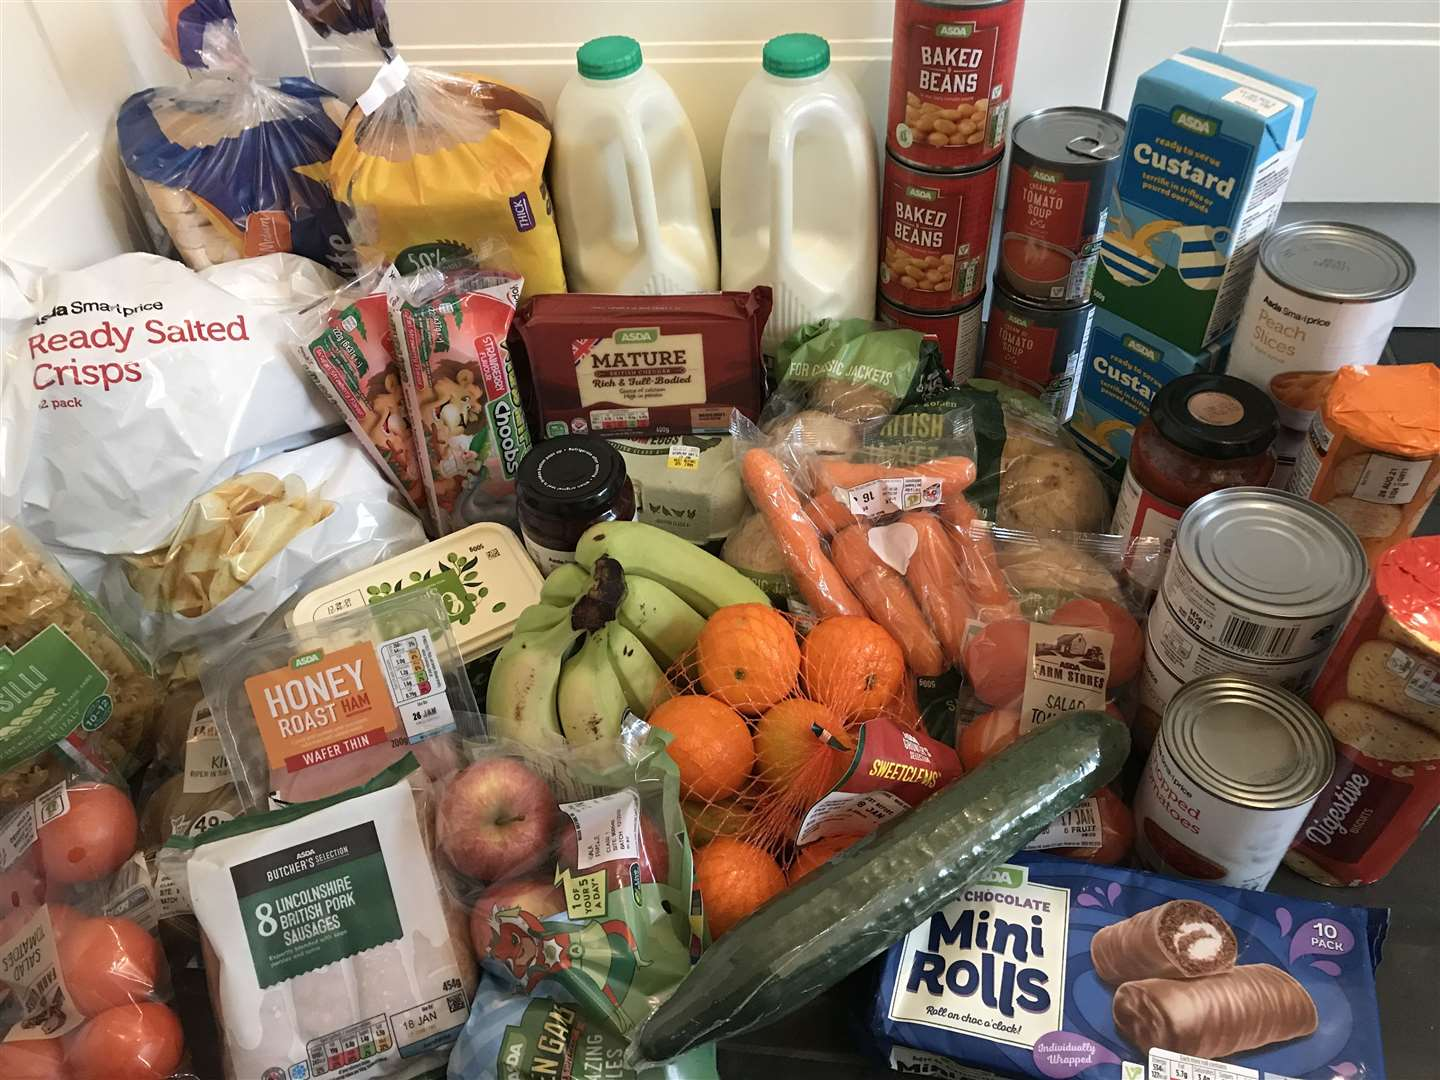 This shop cost just over £26 with the aim of feeding two primary school aged children lunches for a week to 10 days